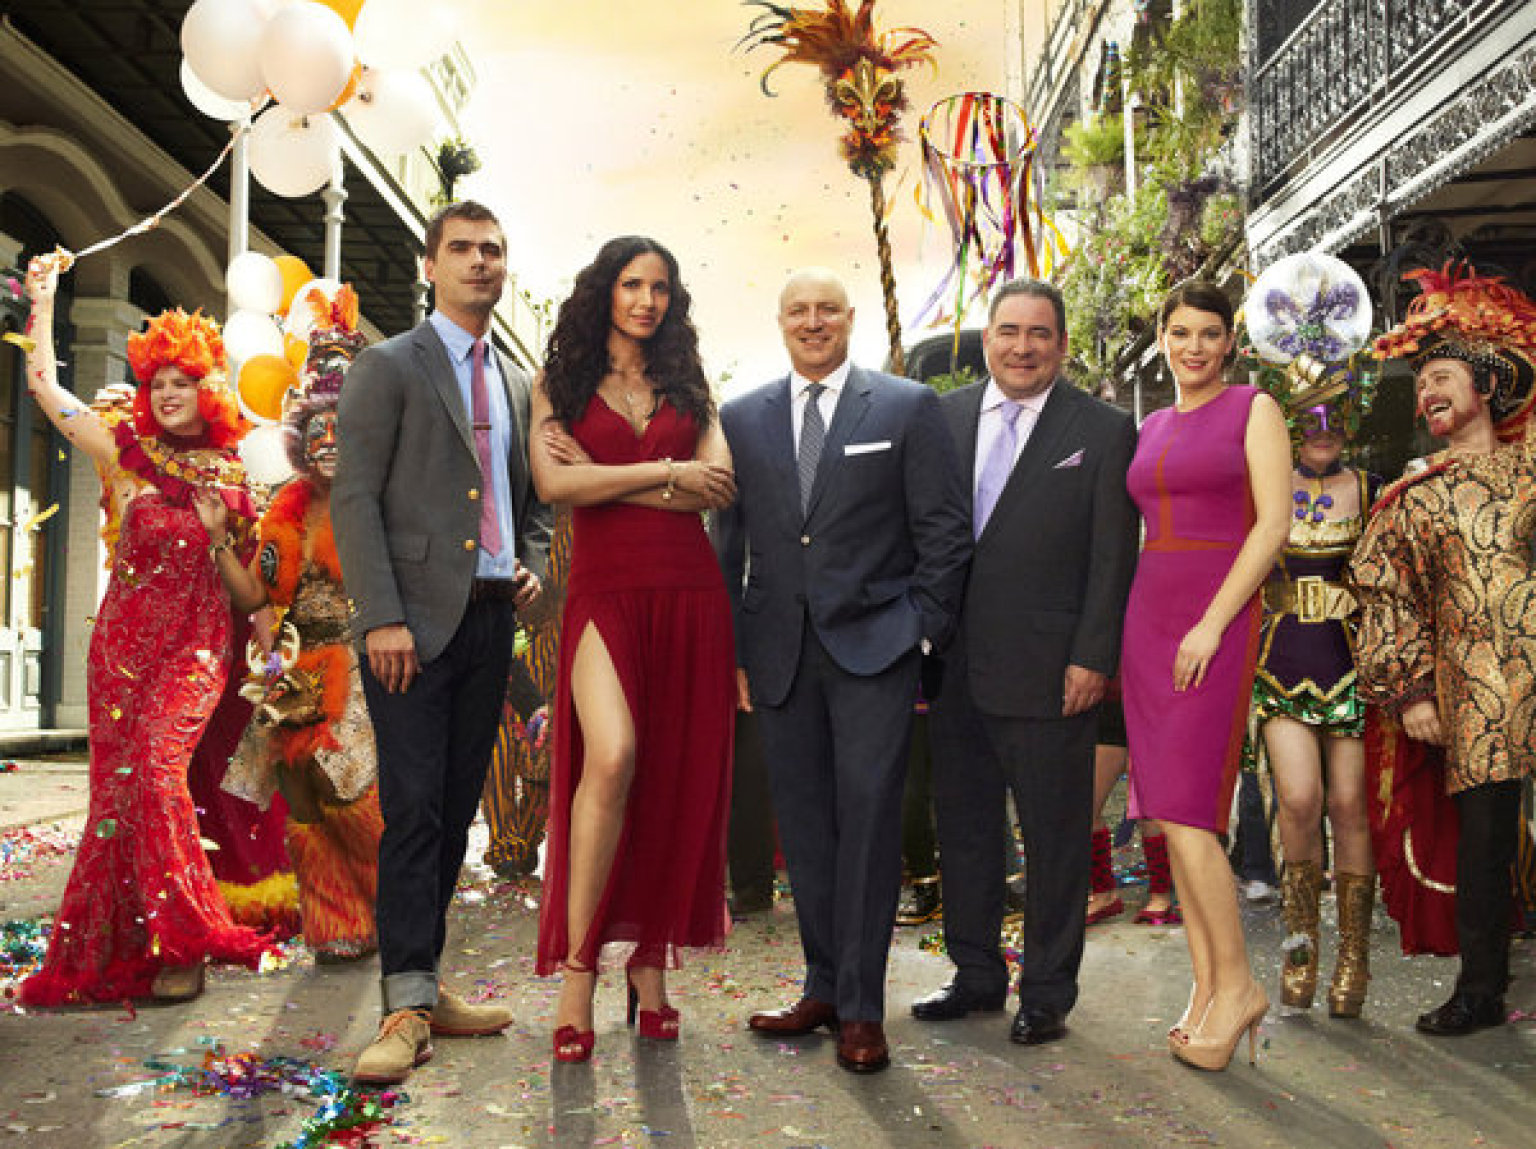 Top Chef Season 11 In New Orleans Gets October Premiere